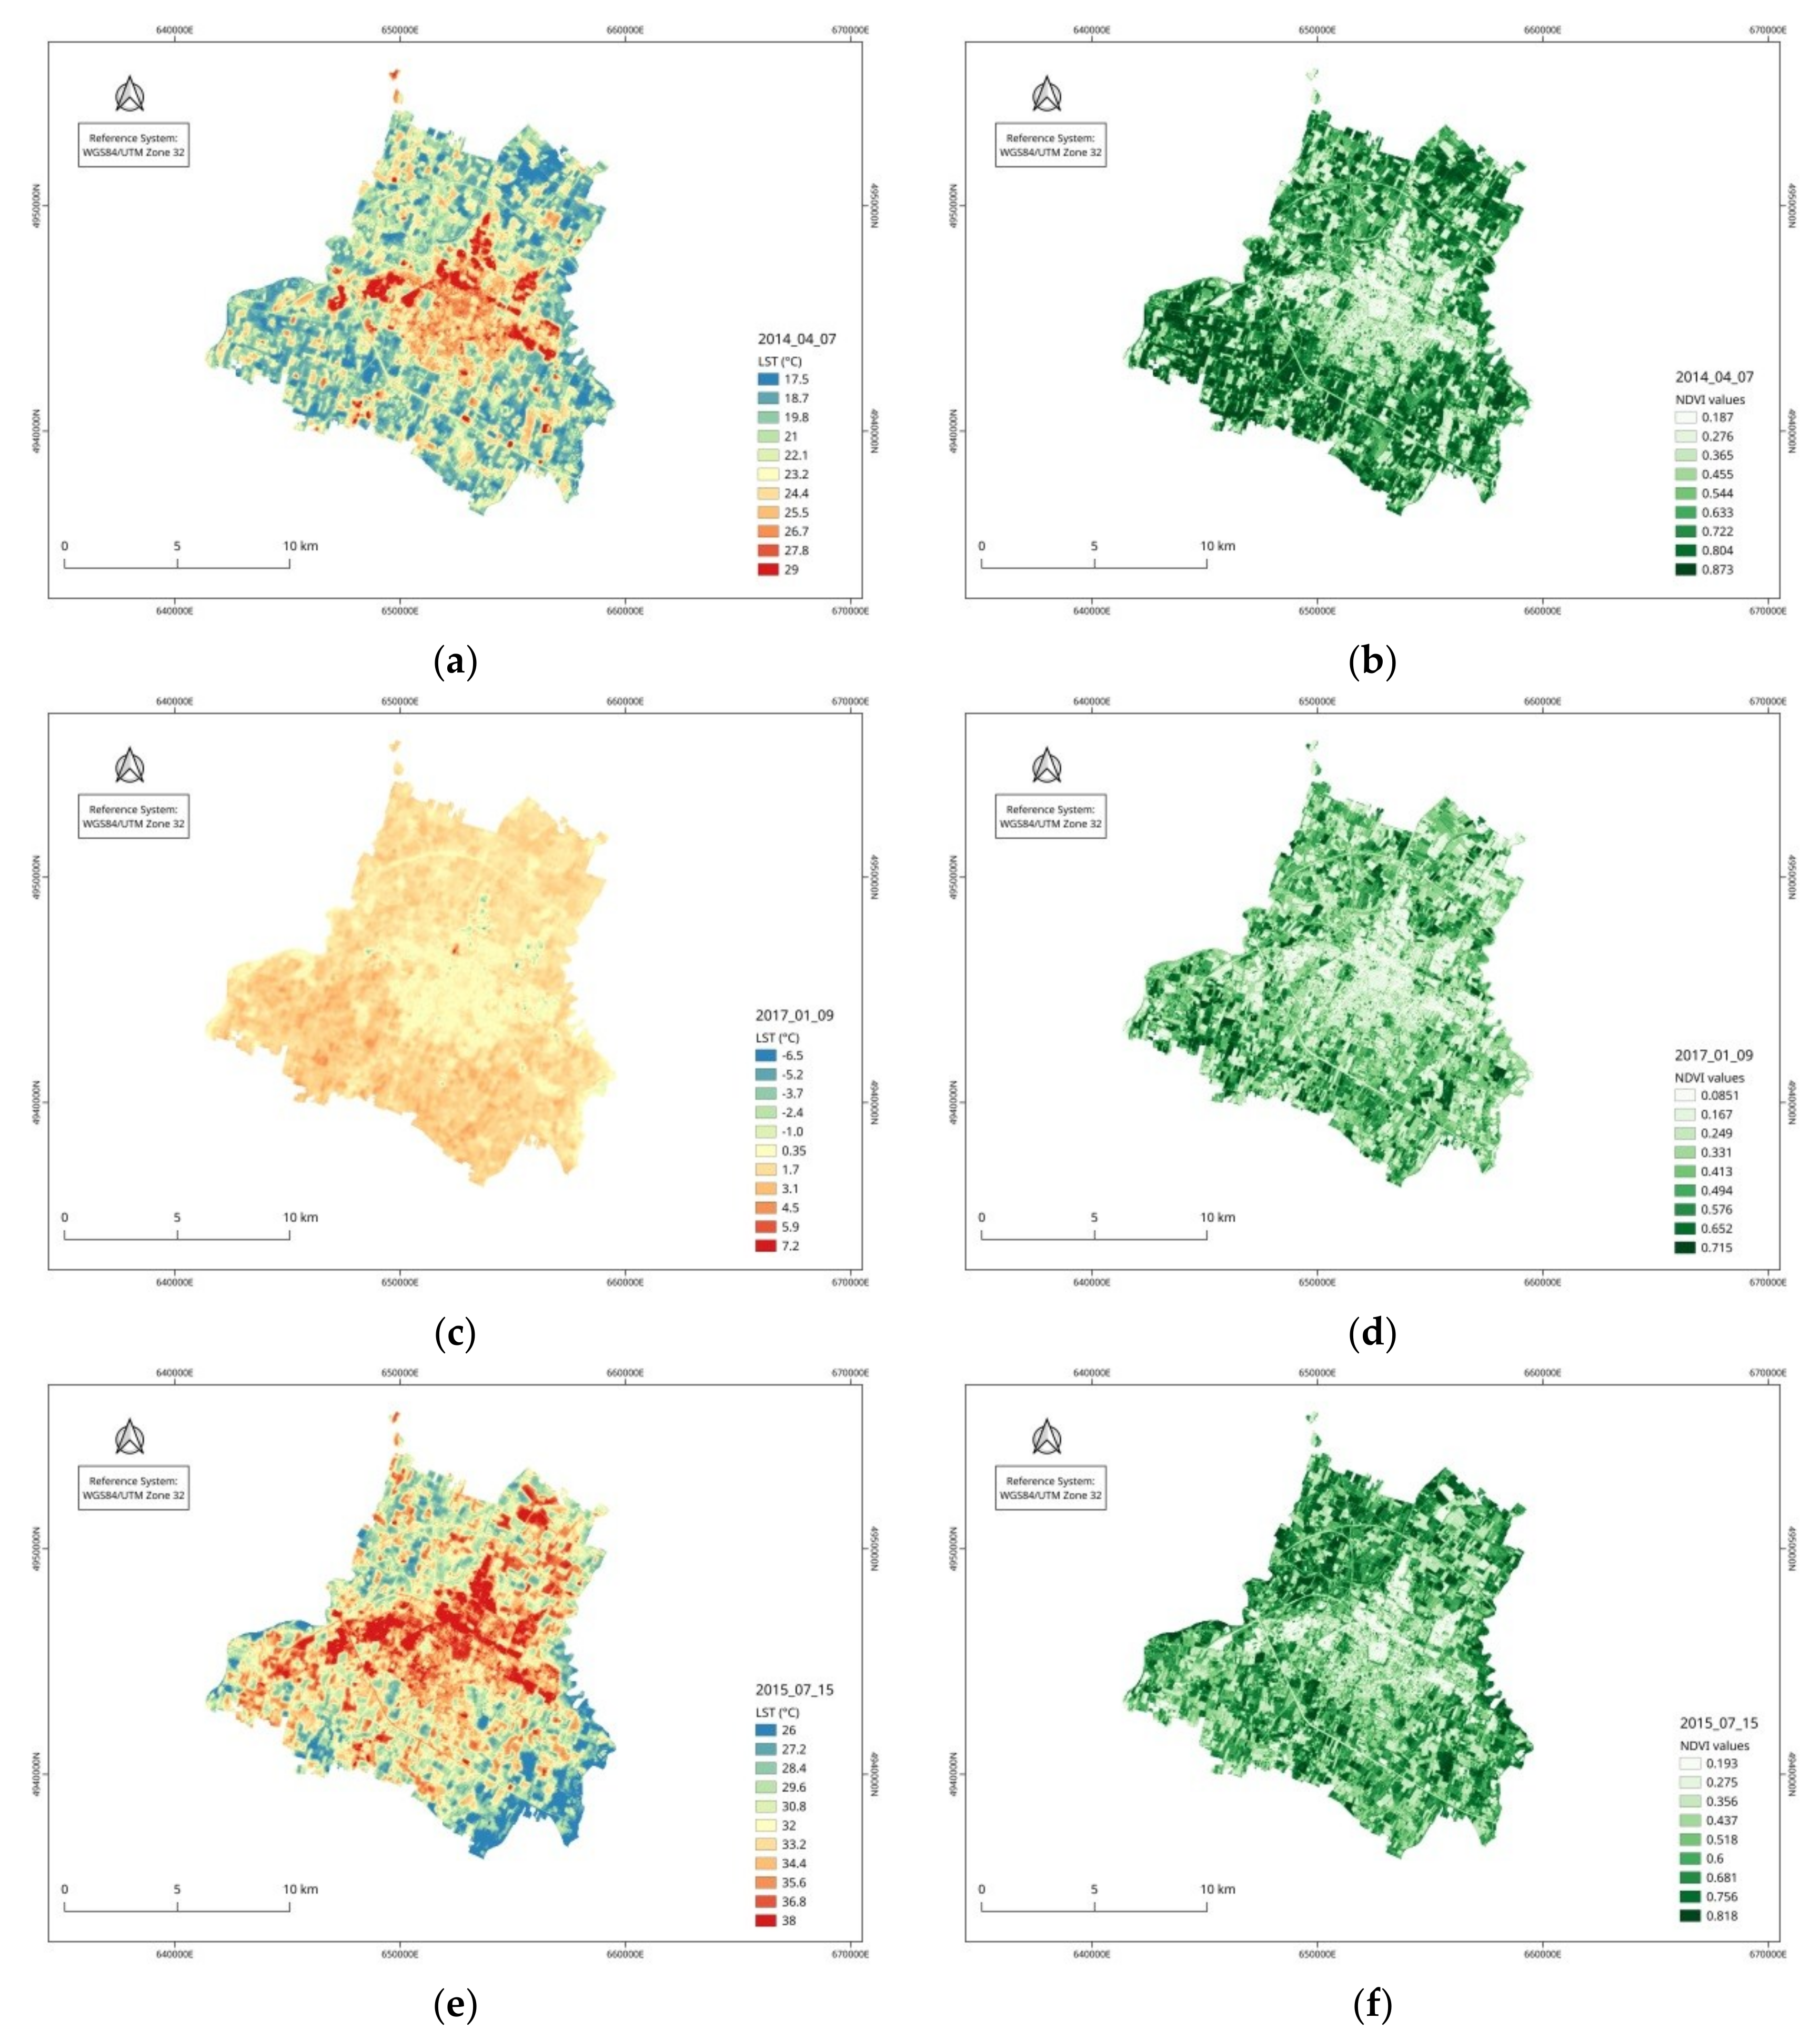 nokia temporal environment case study Spatio-temporal patterns of soil organic carbon and ph in relation to environmental factors—a case study of the black soil region of northeastern china agriculture, ecosystems & environment , vol 245  p 22-31.